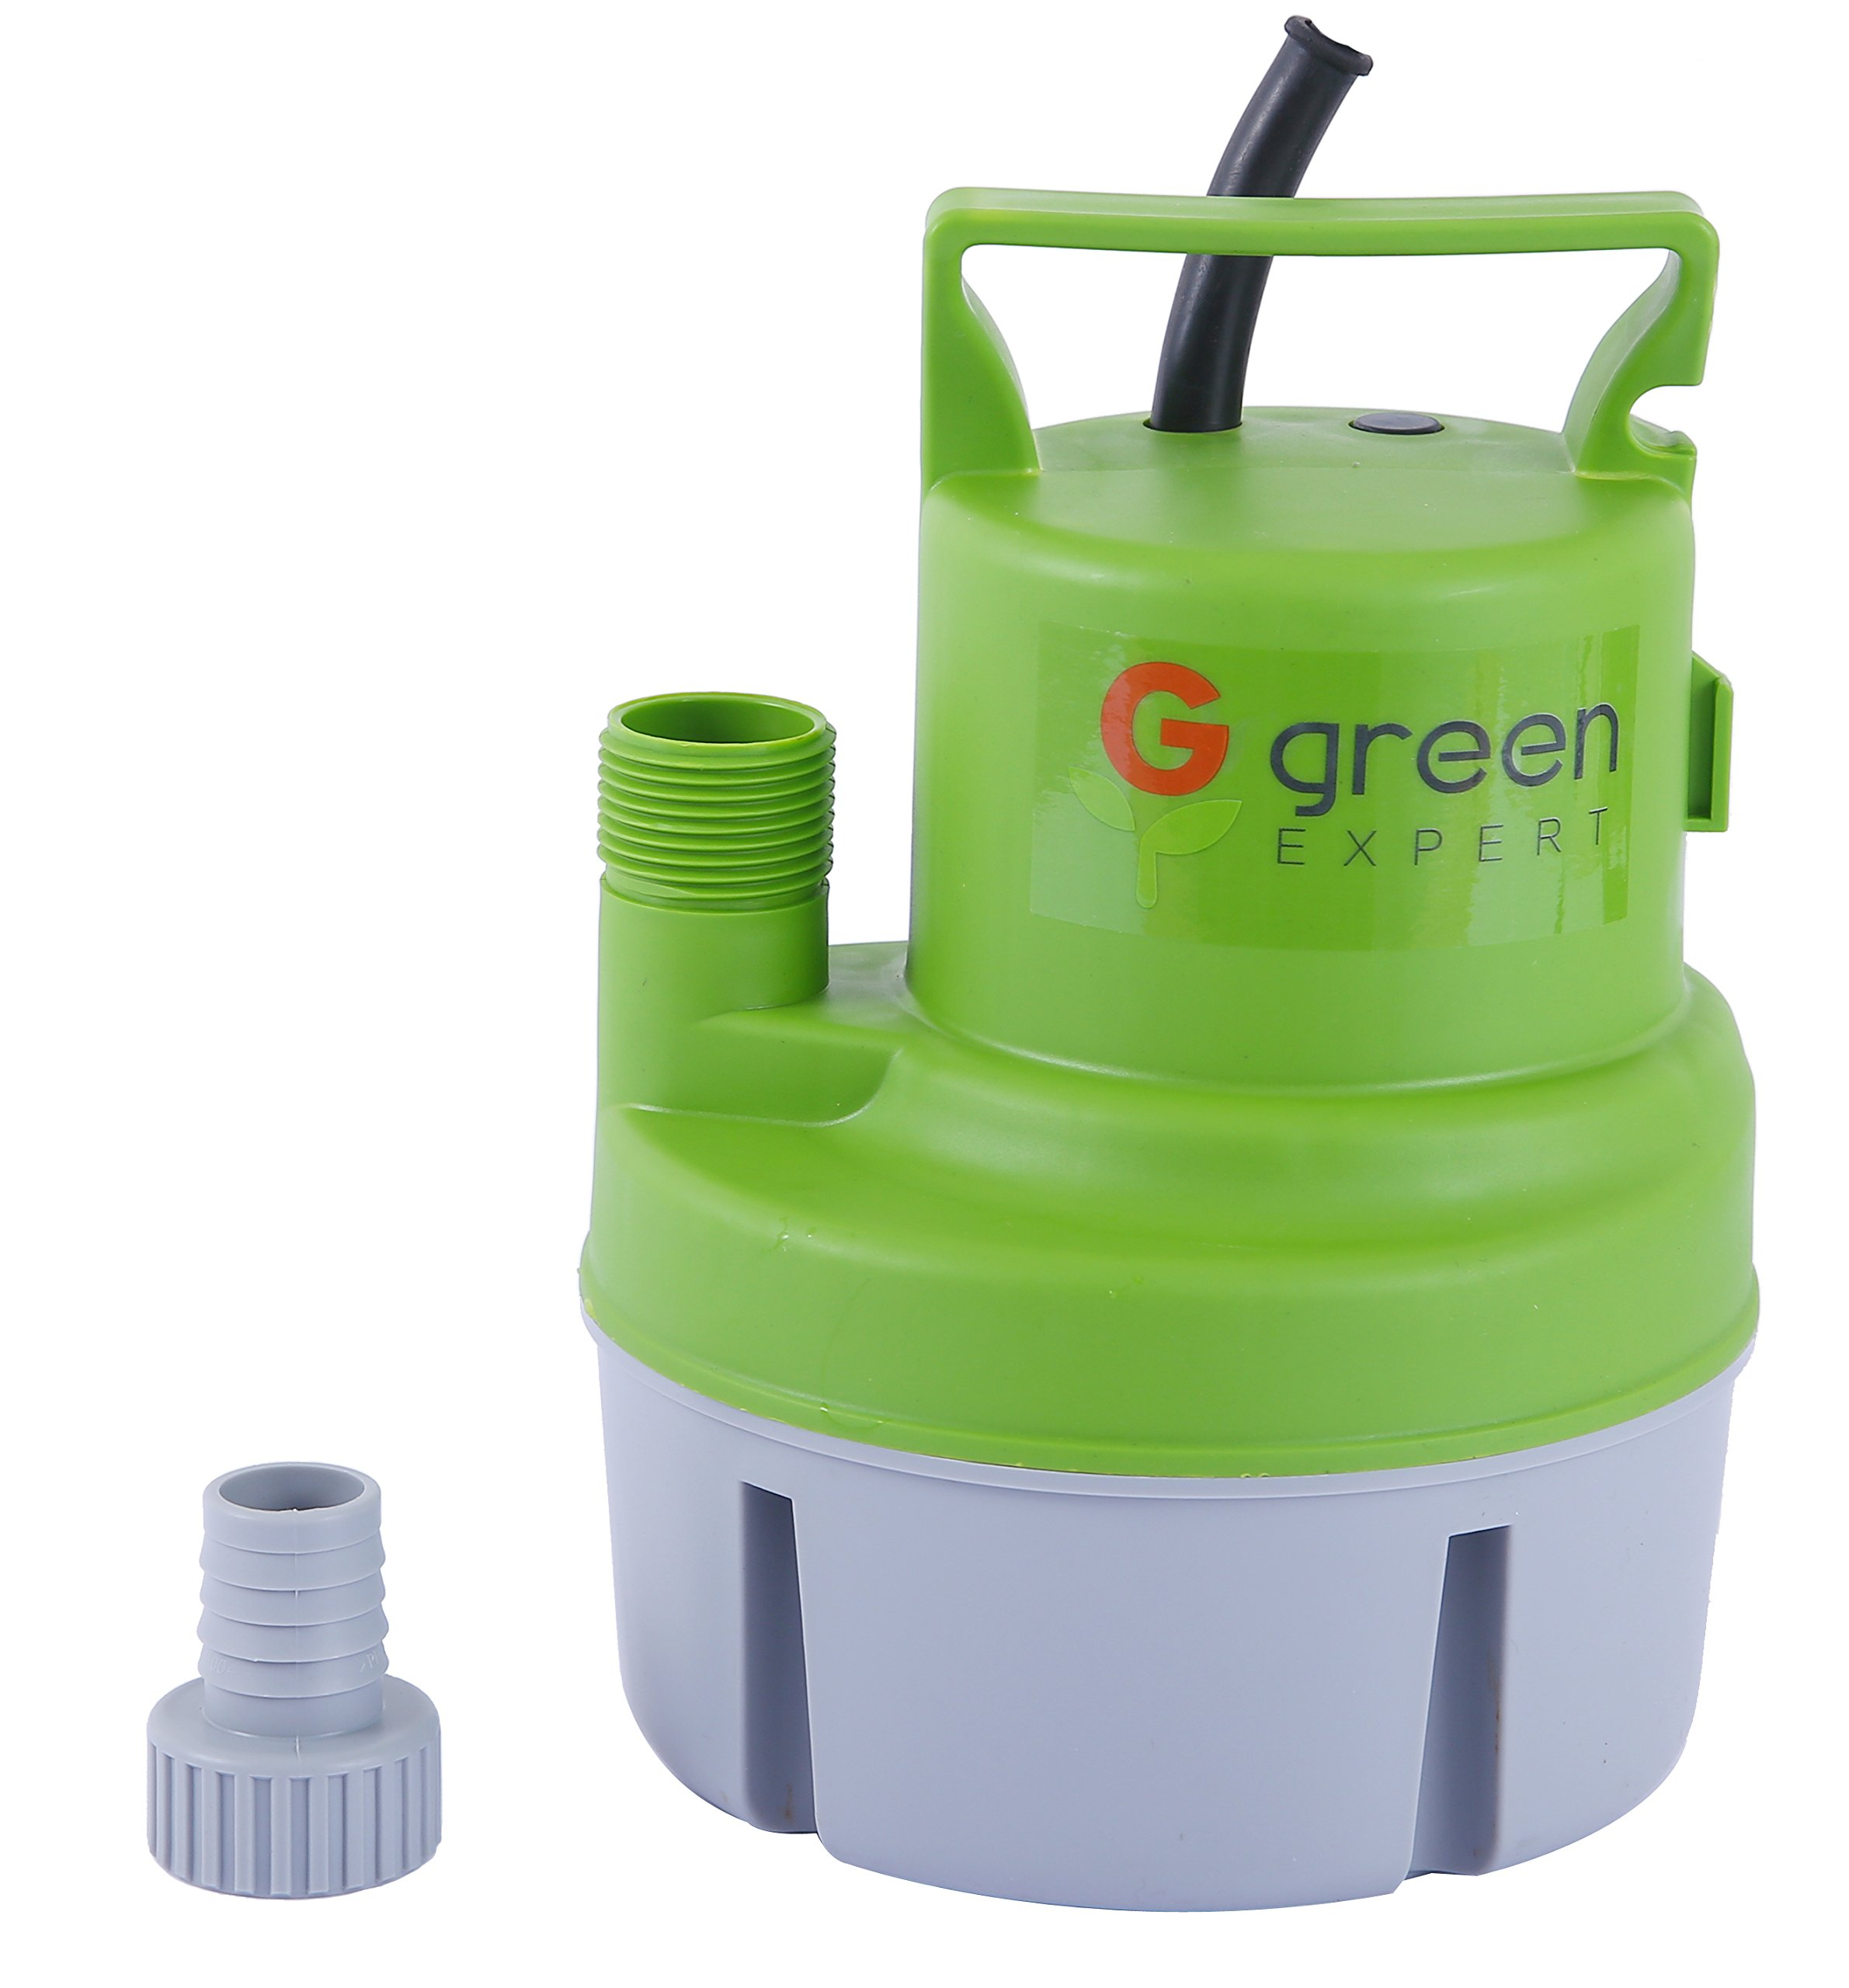 Green Expert 203617 1/6 HP Portable Submersible Utility Pump with 1056 GPH Flow Efficiently for Water Removal Basement Flood Drainage Pump with 3/4'' Adaptor Available for Standard Garden hose